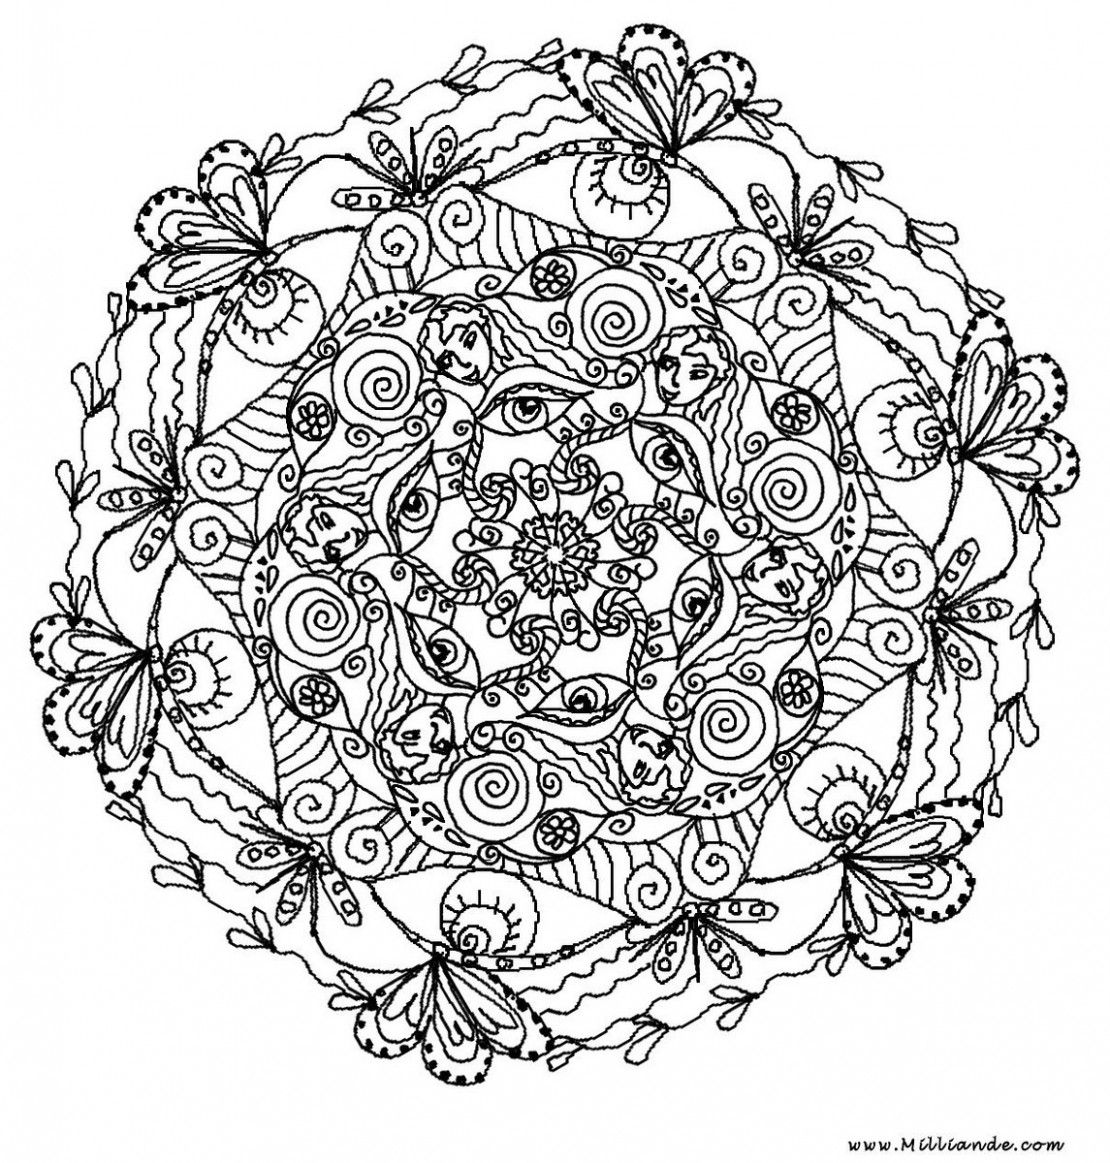 Coloring sheet large print flower - Adult Coloring Pages Flowers To Download And Print For Free